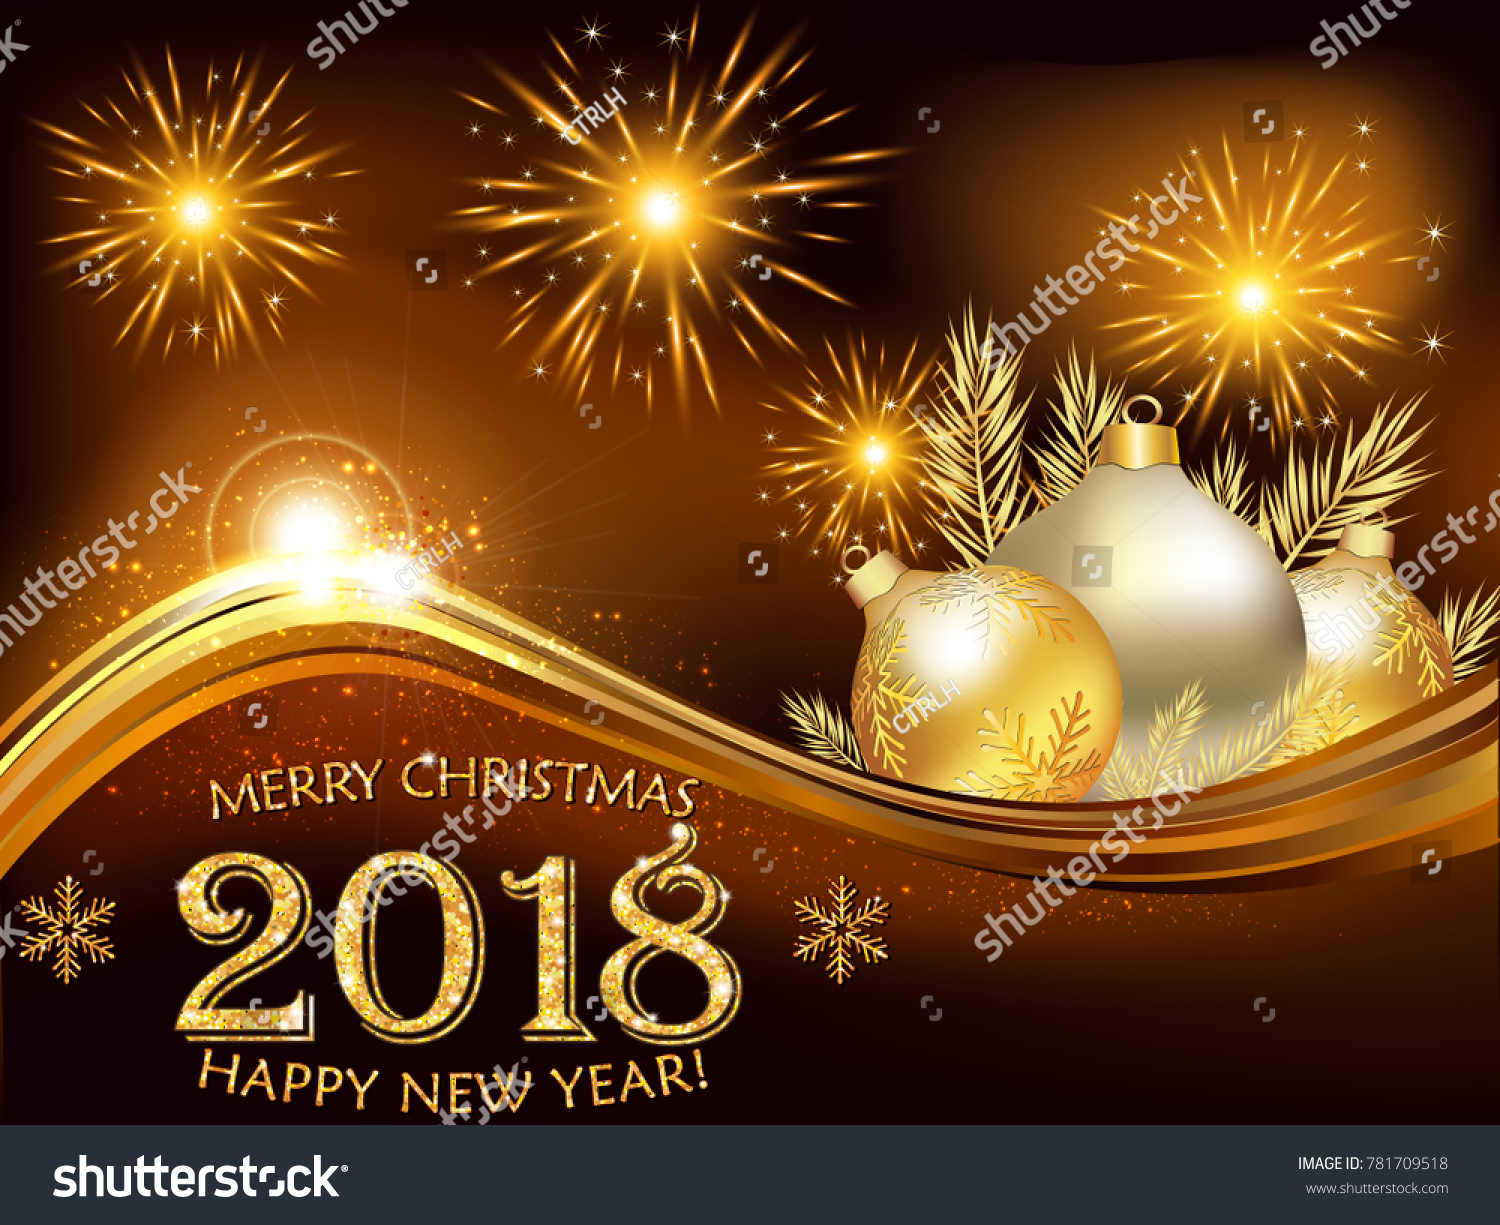 happy new year printable greeting card with fireworks and baubles on a brown background